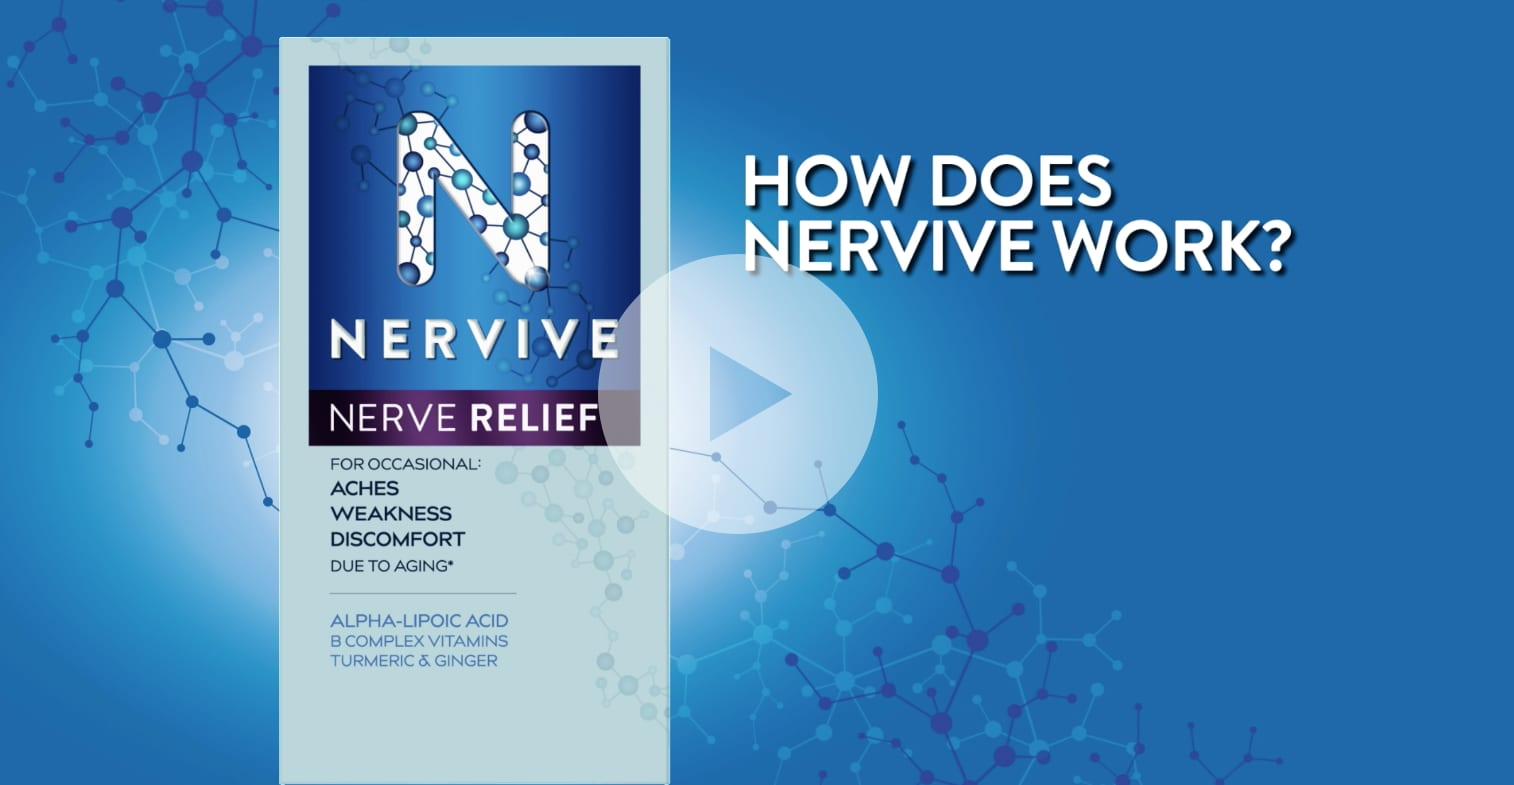 How Does Nervive Work?